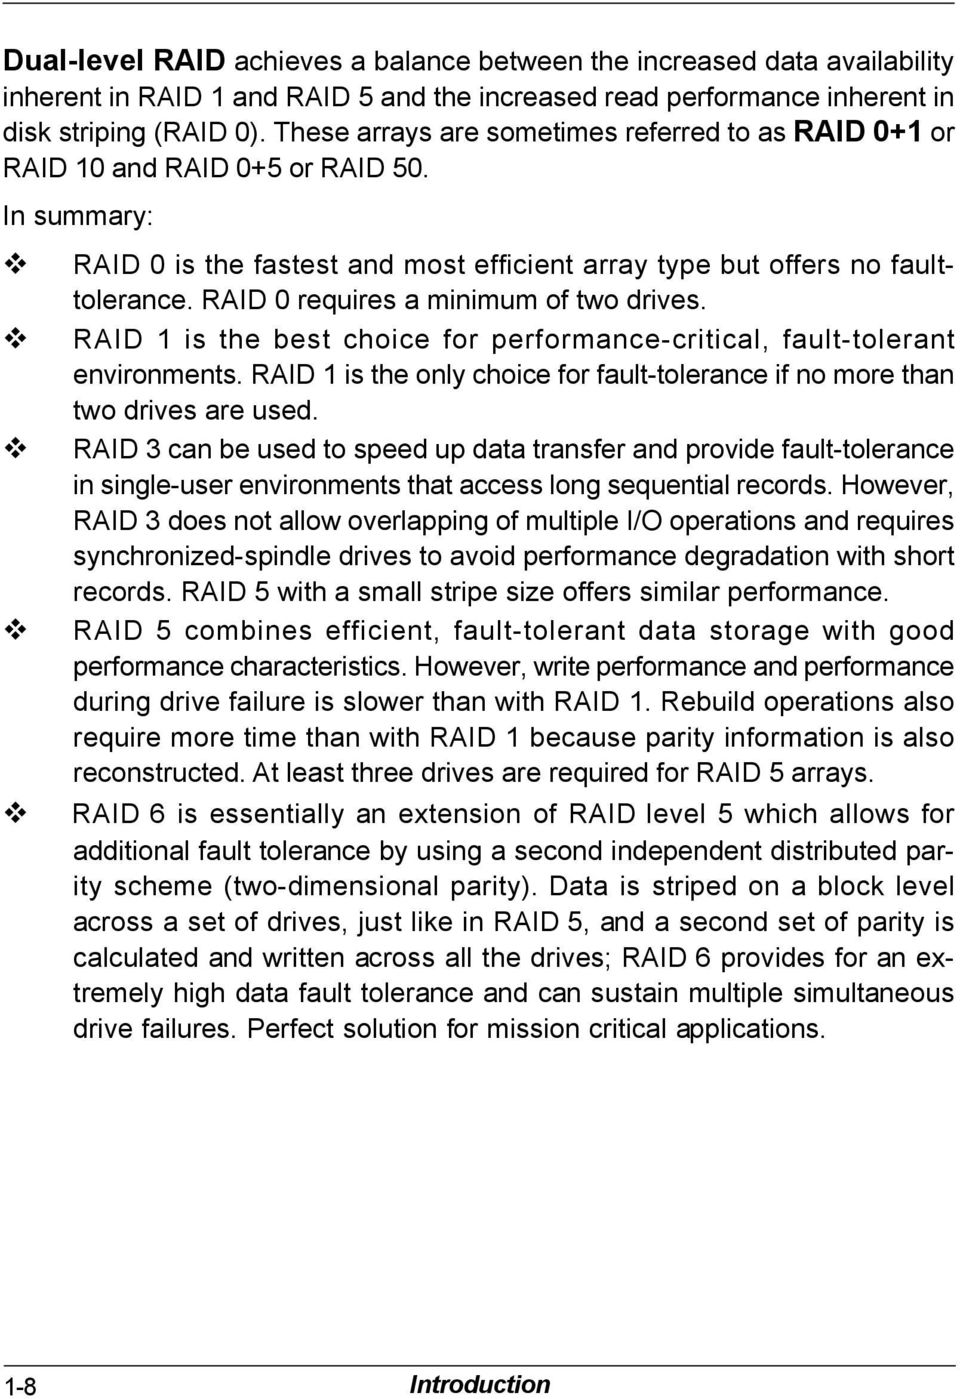 RAID 0 requires a minimum of two drives. RAID 1 is the best choice for performance-critical, fault-tolerant environments.